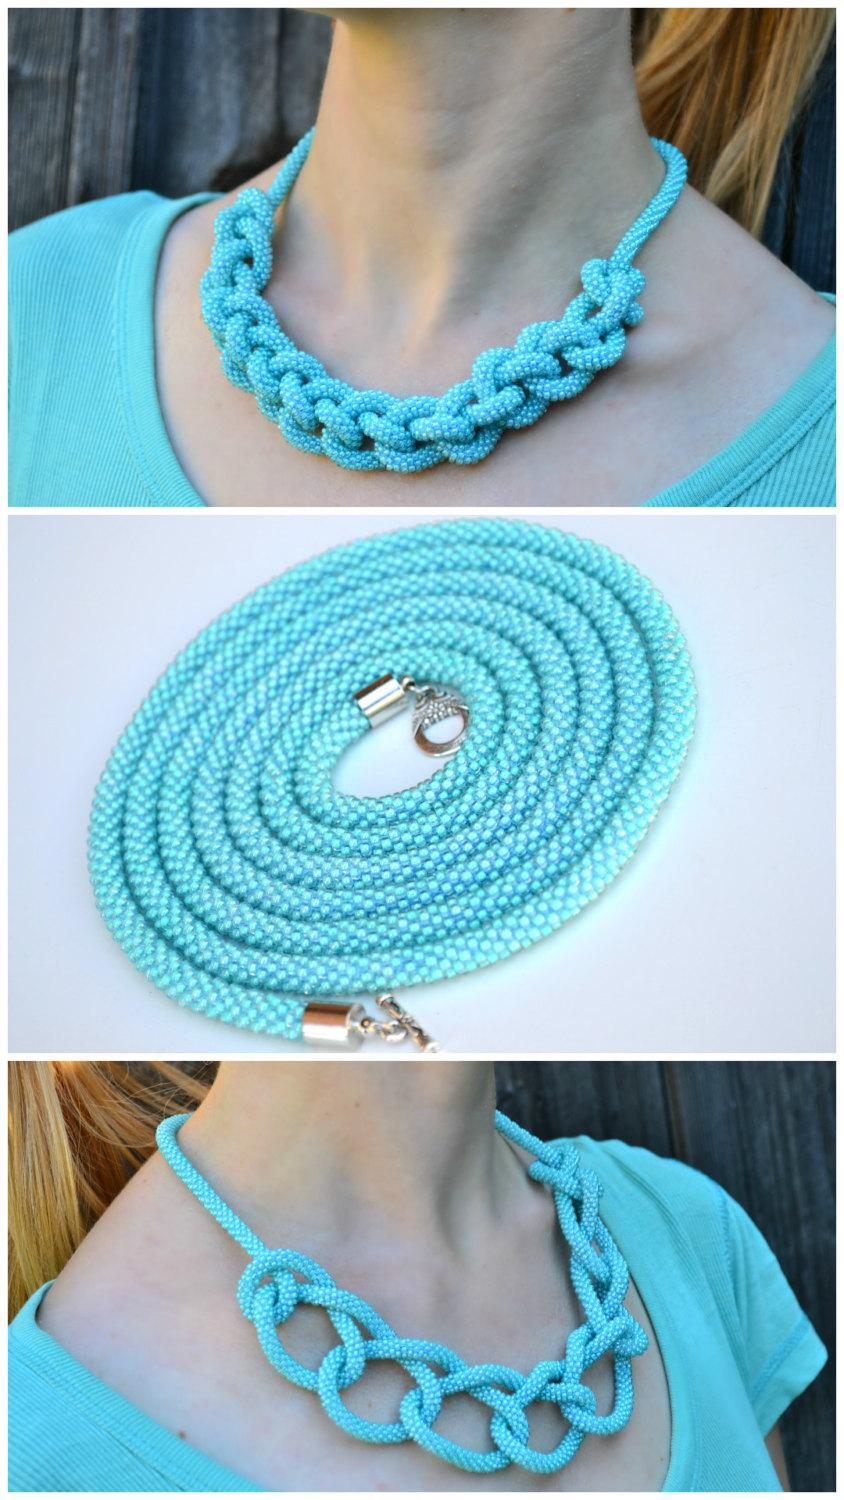 Wedding - Turquoise mint long beaded crochet rope lariat necklace. Spiral rope chocker beadwork statement necklacework statement necklace